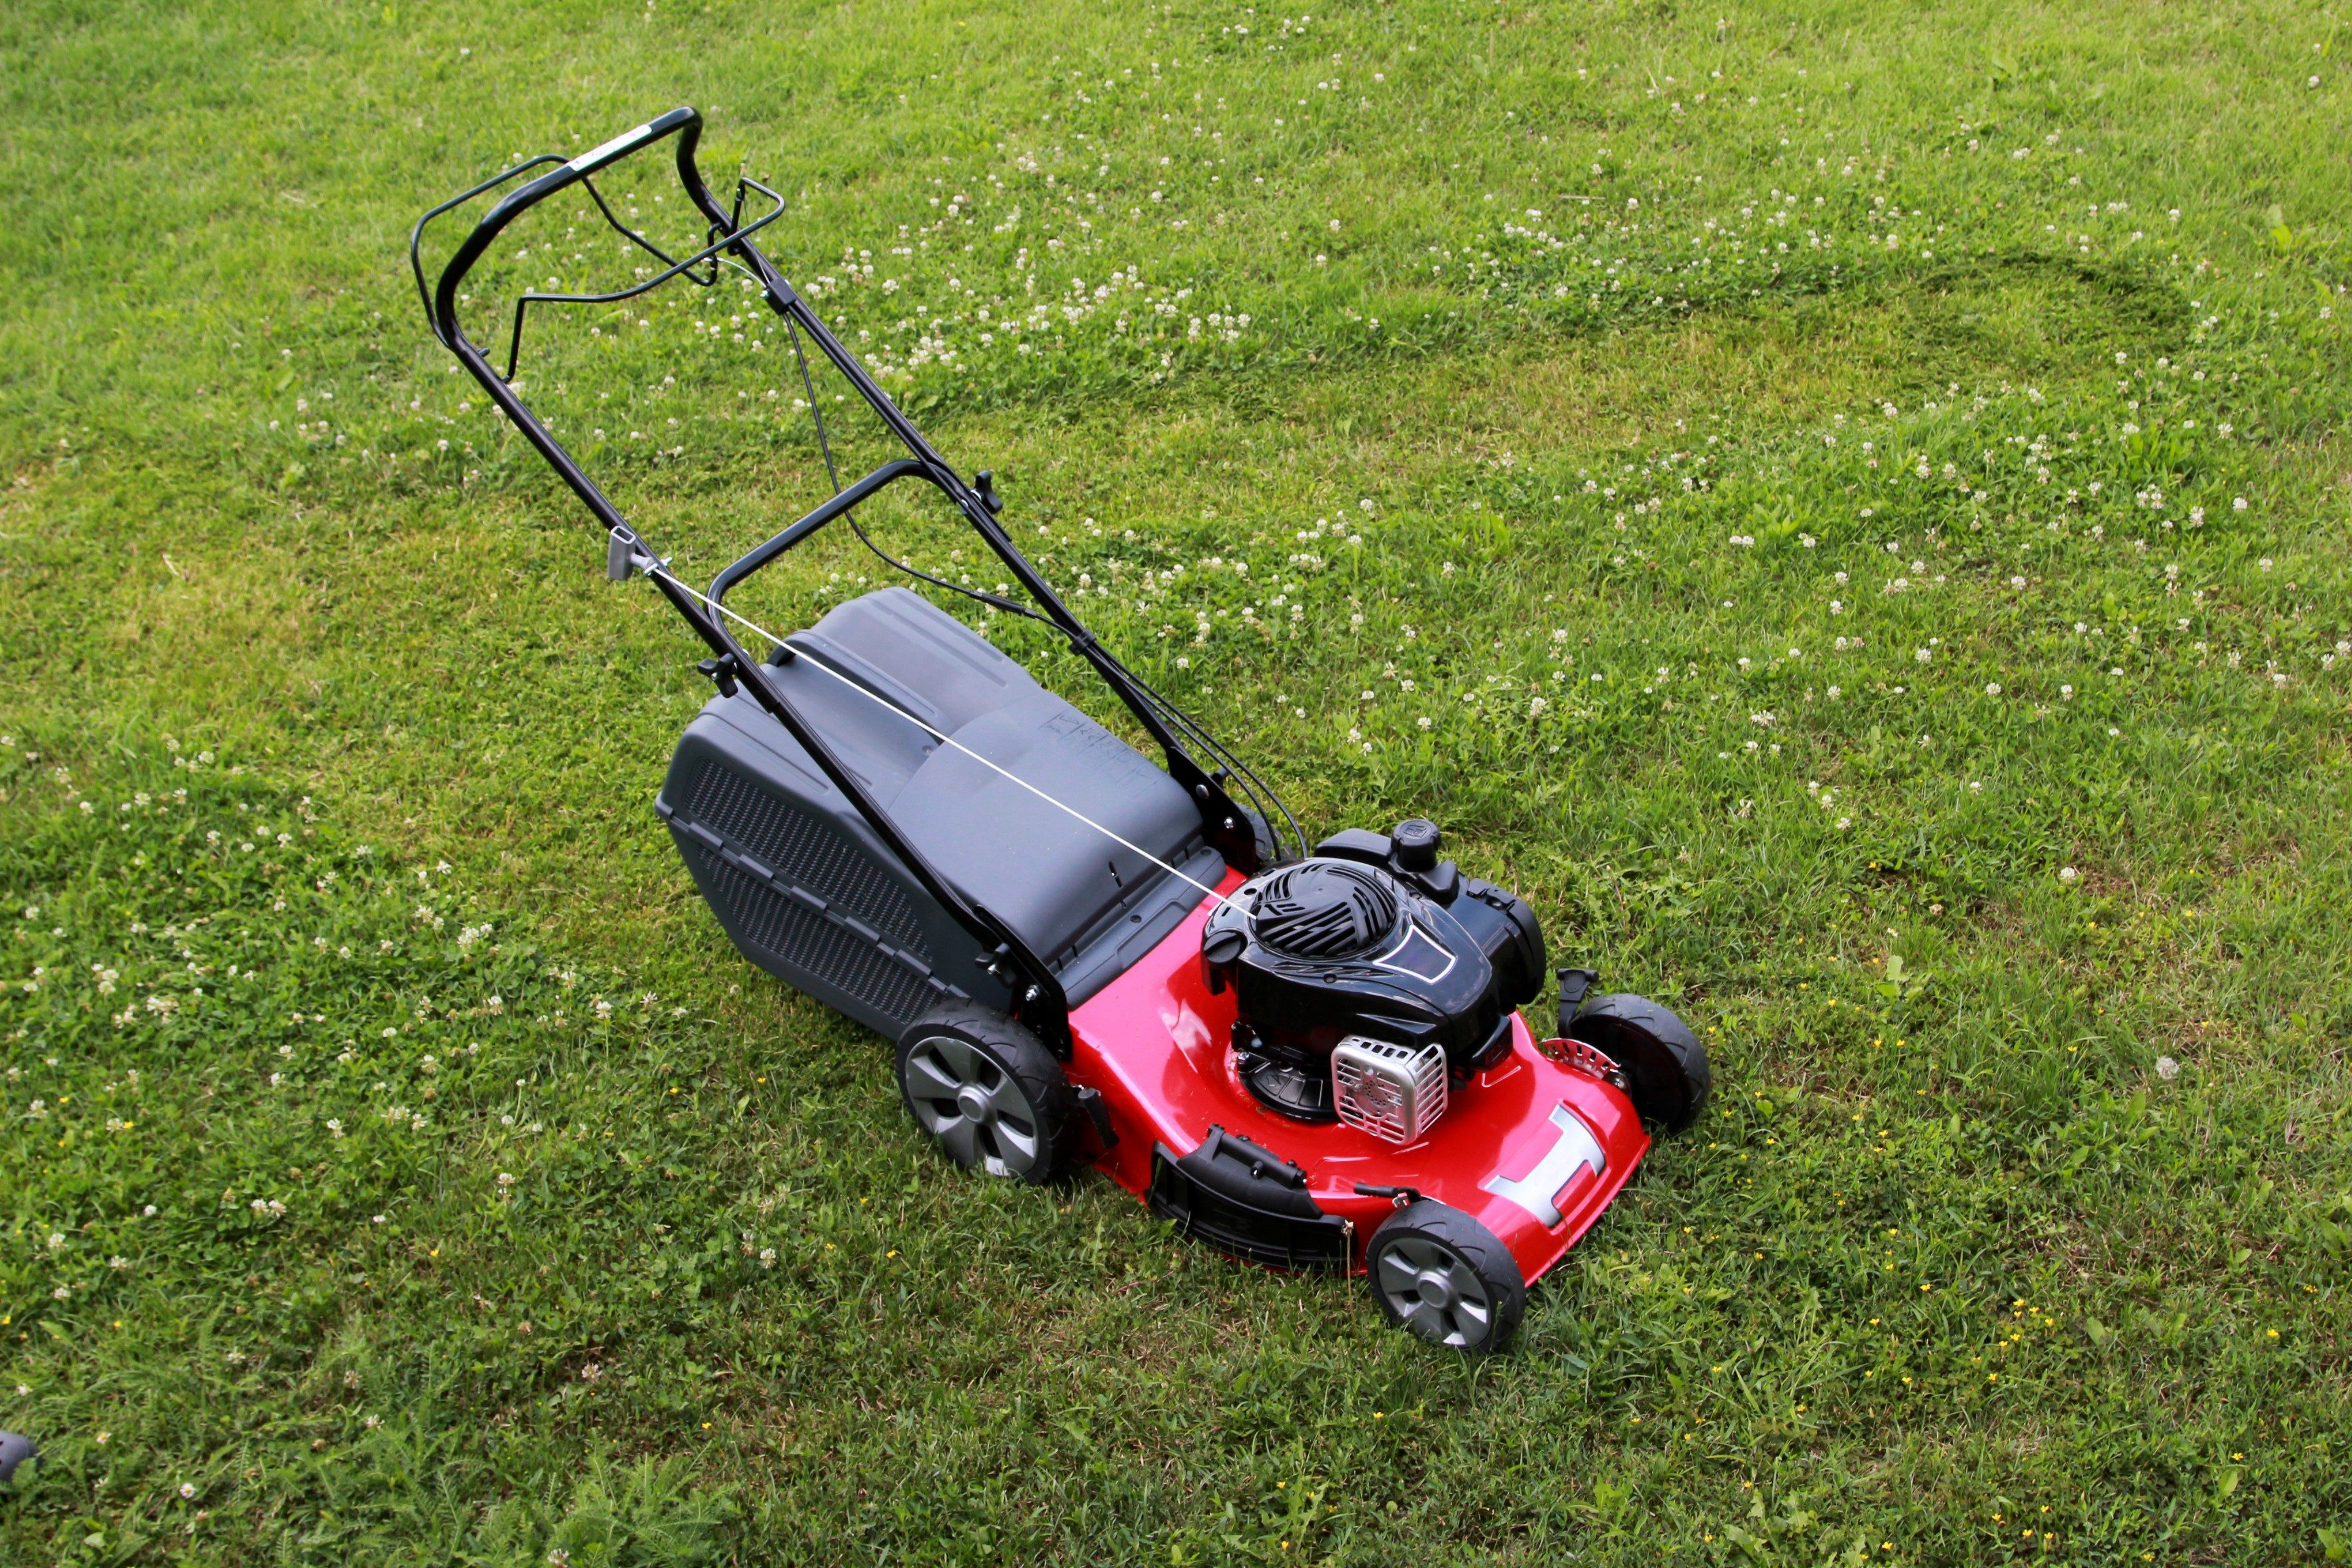 Lawn mower on the grass during the summer day